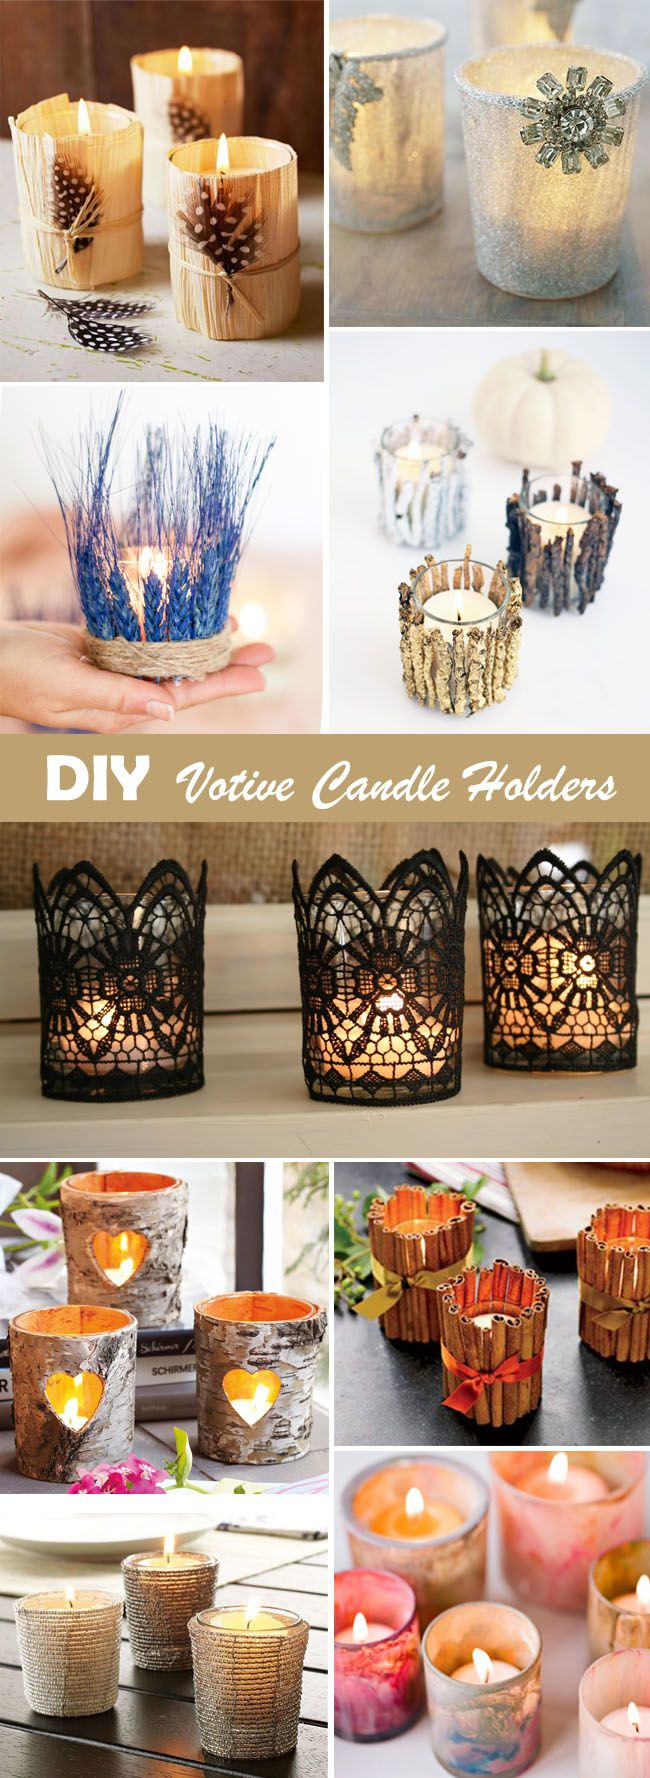 DIY gorgeous votive candle holders wedding decor ideas